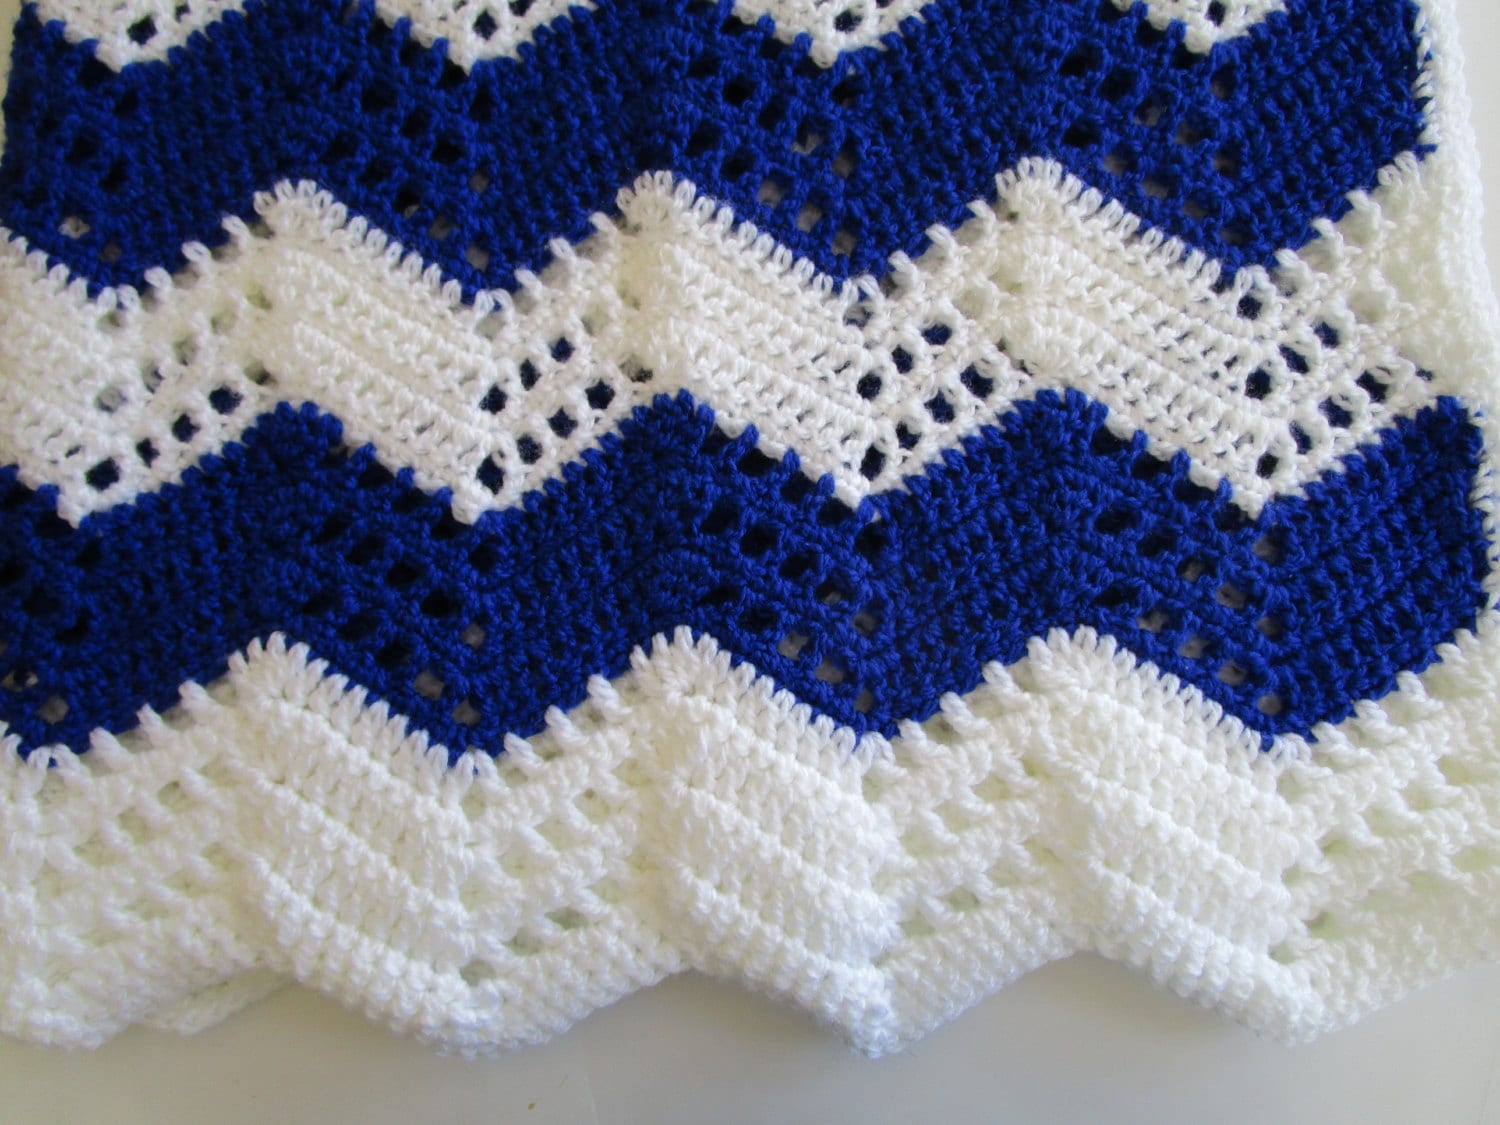 Crochet Patterns Crochet Baby Blanket Pattern Crochet